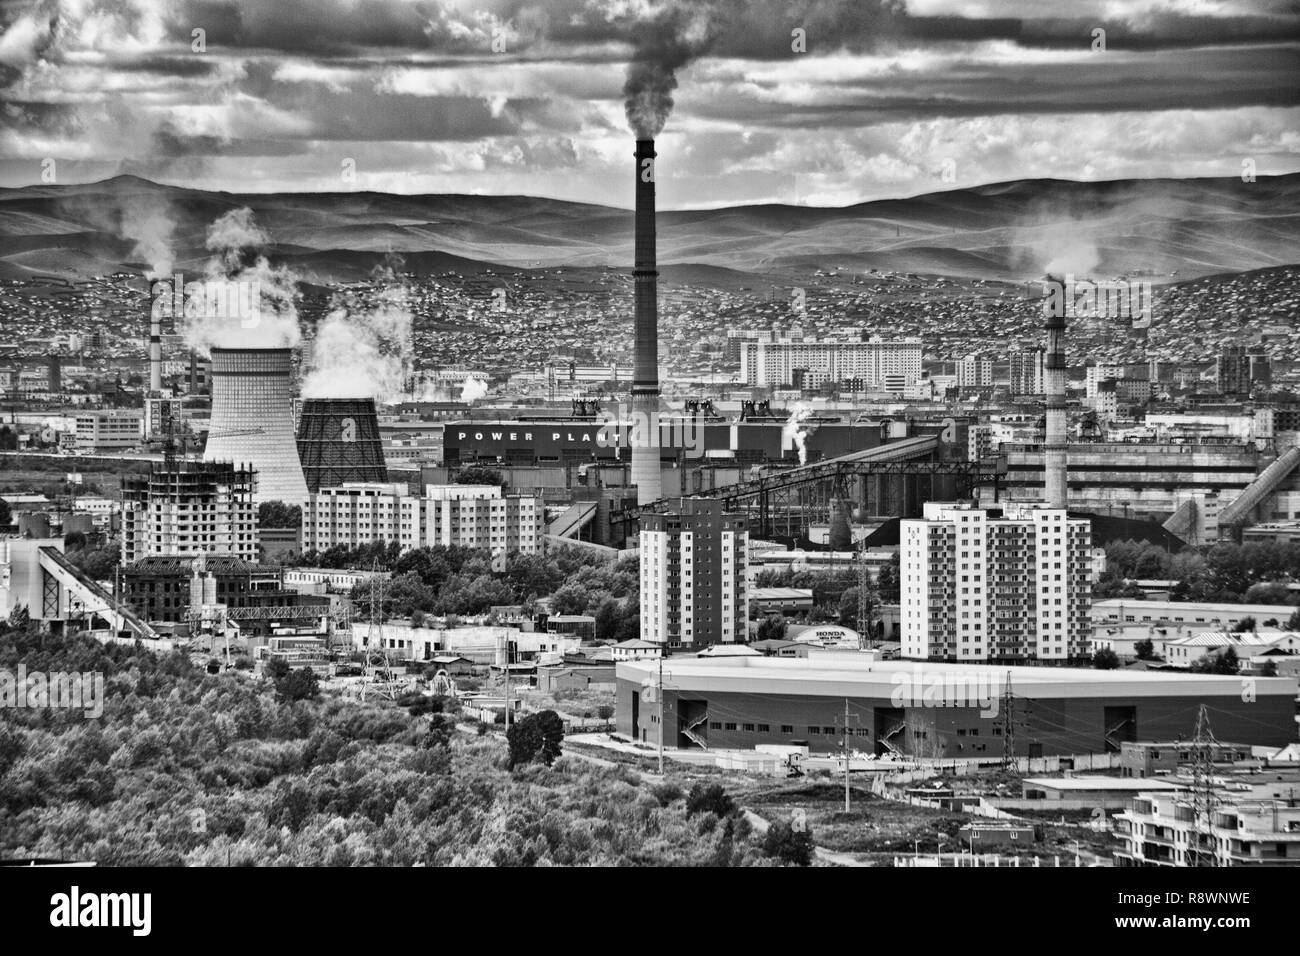 Views of  a Power Plant in Ulan Bator, Mongolia - Stock Image